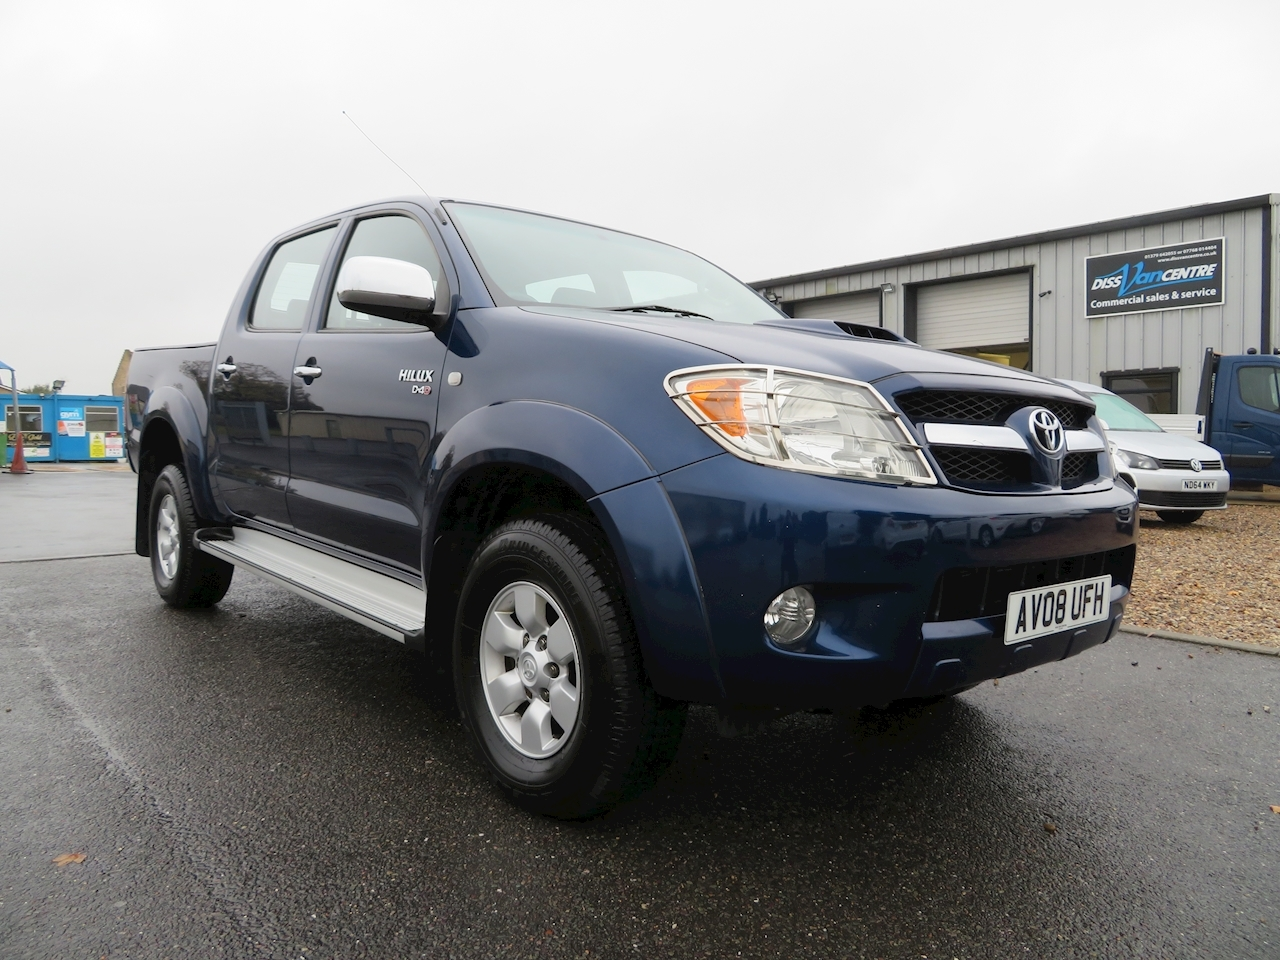 Hilux 4X4 D-4D Dcp Light 4X4 Utility 2.5 Manual Diesel